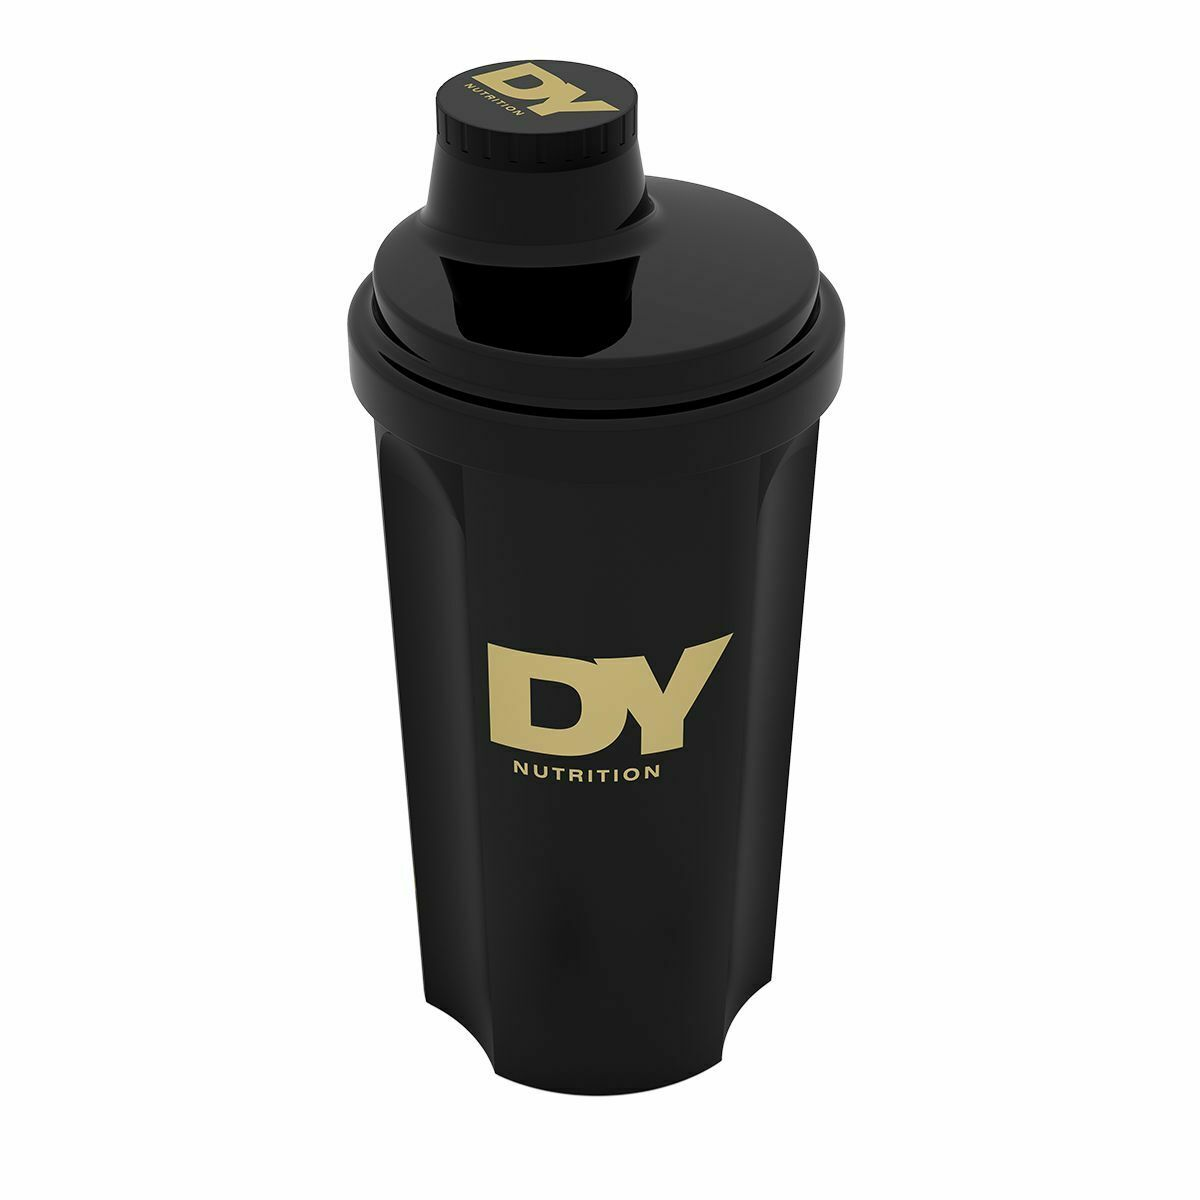 Image 11 - Dorian Yates Signature Shaker Cup DY Nutrition shaker 3 sided design in 2 colour